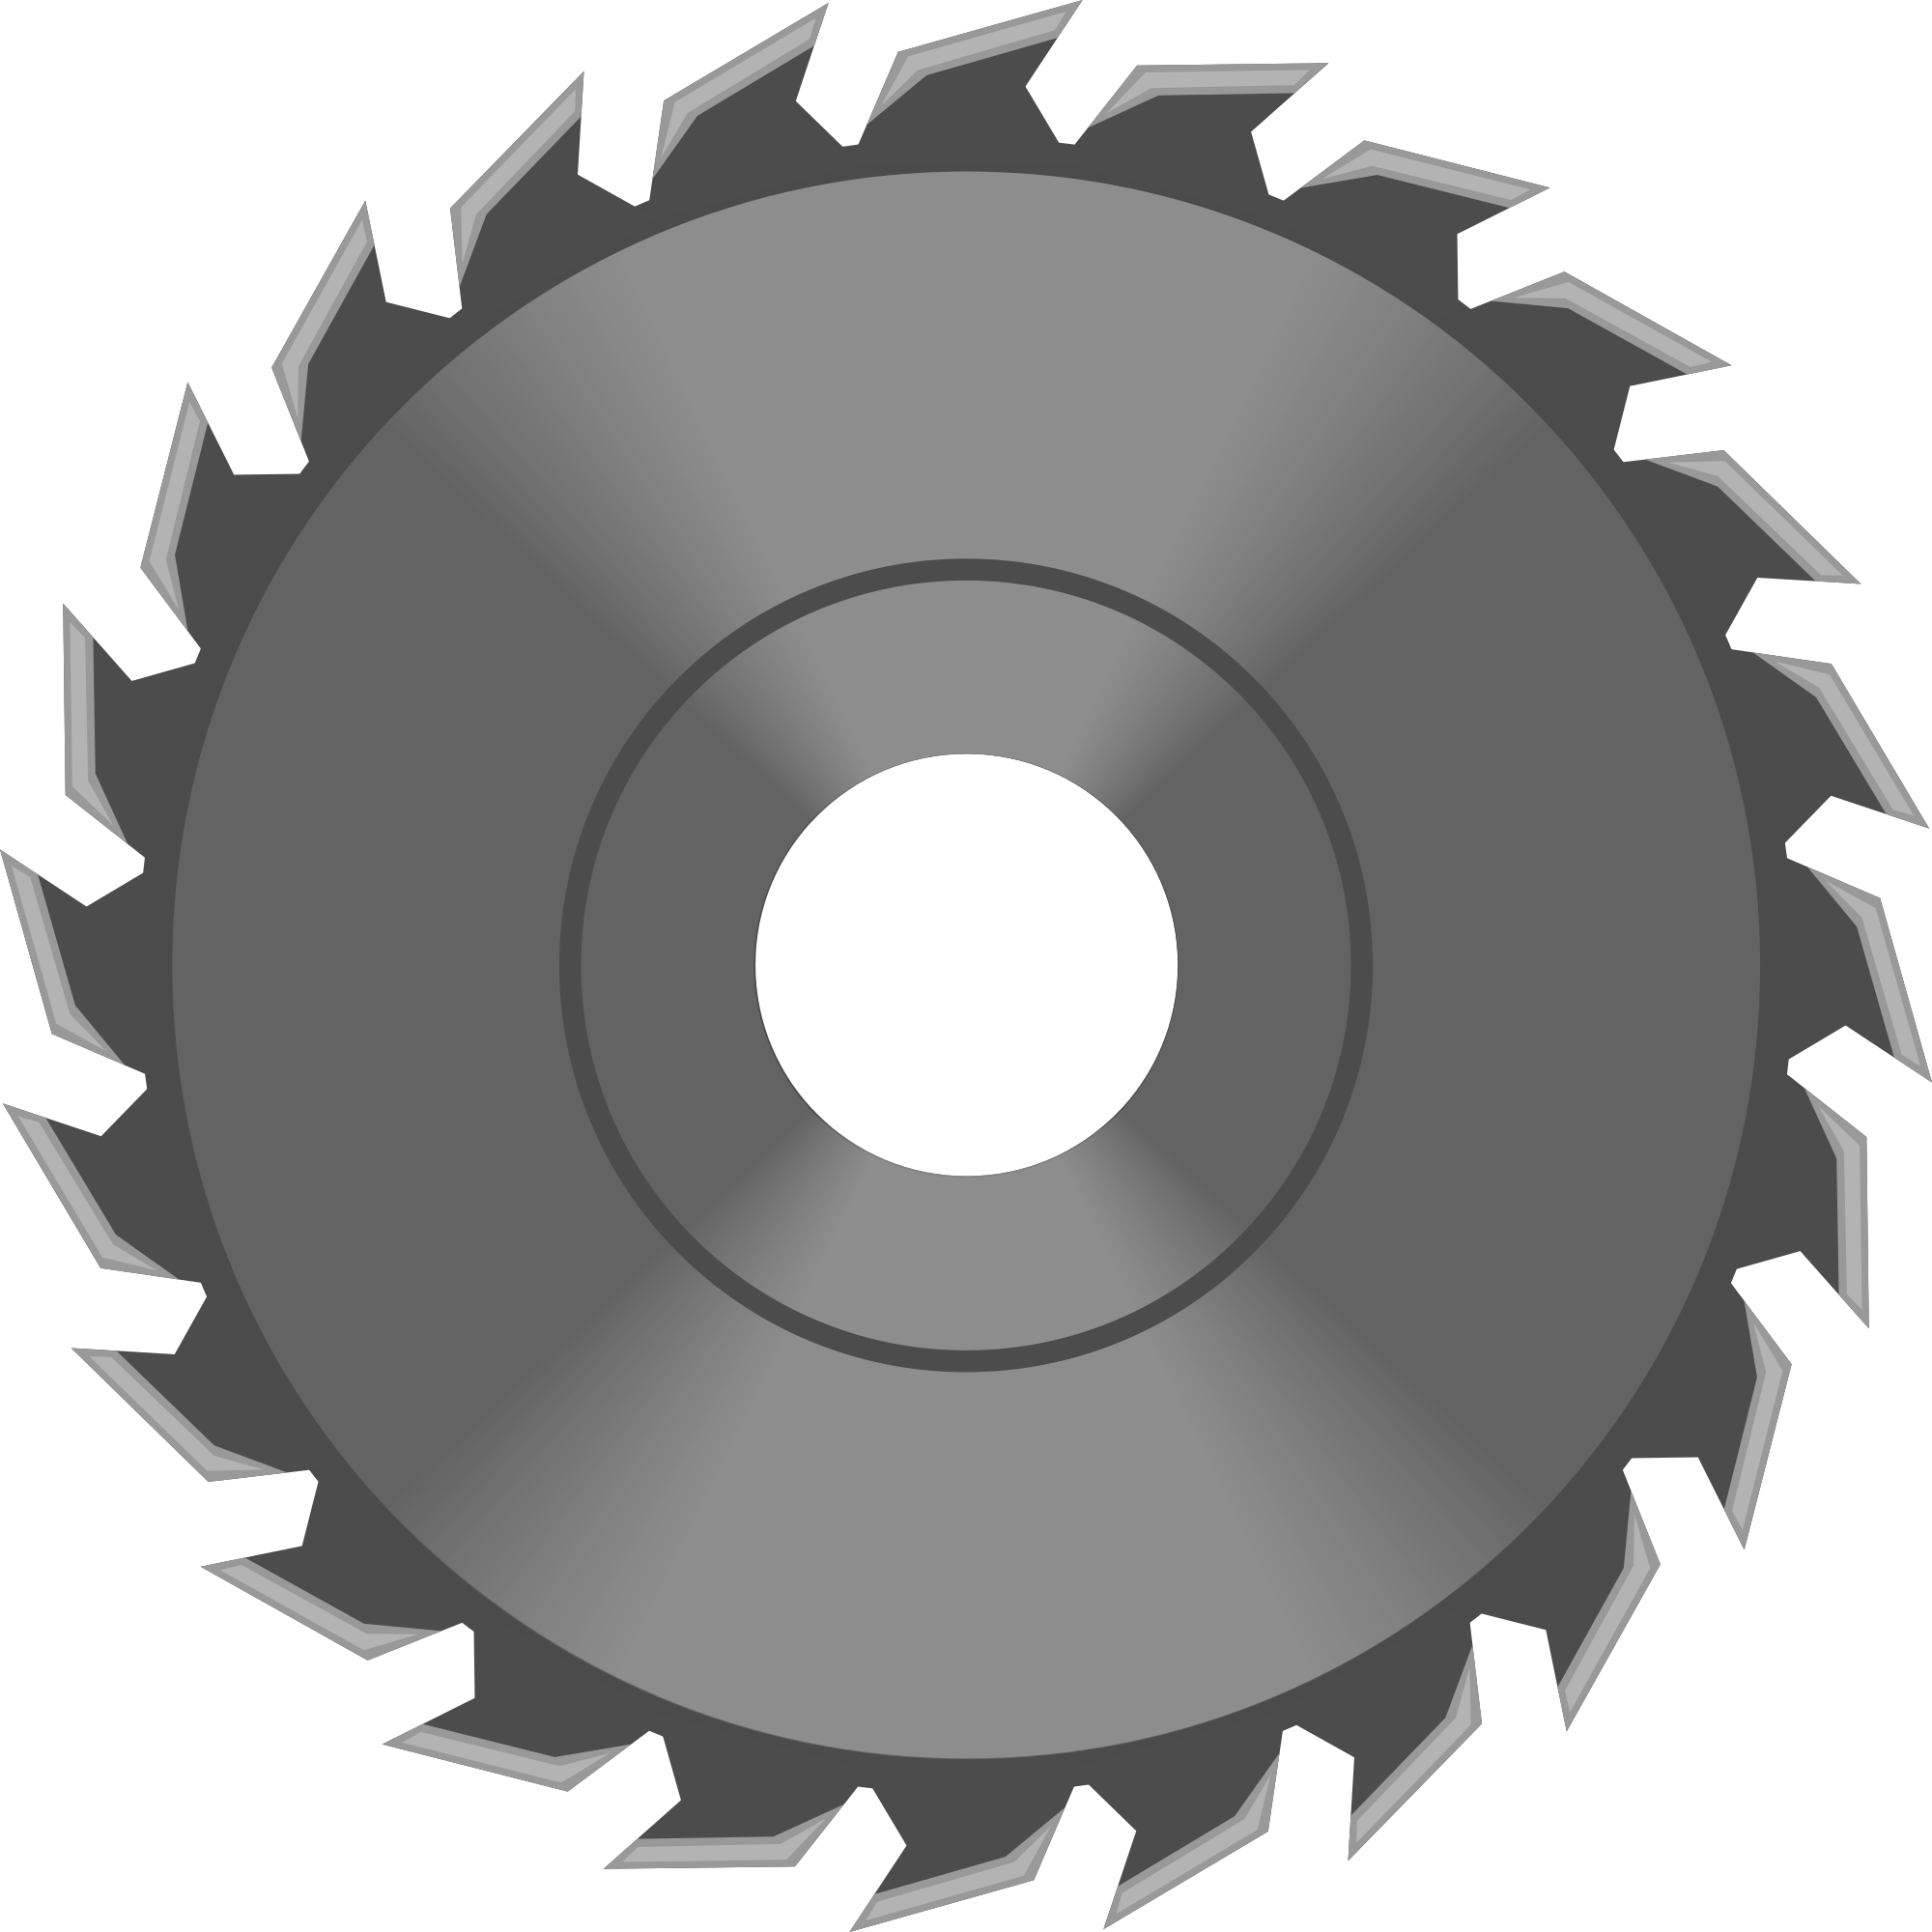 buzz saw blade png